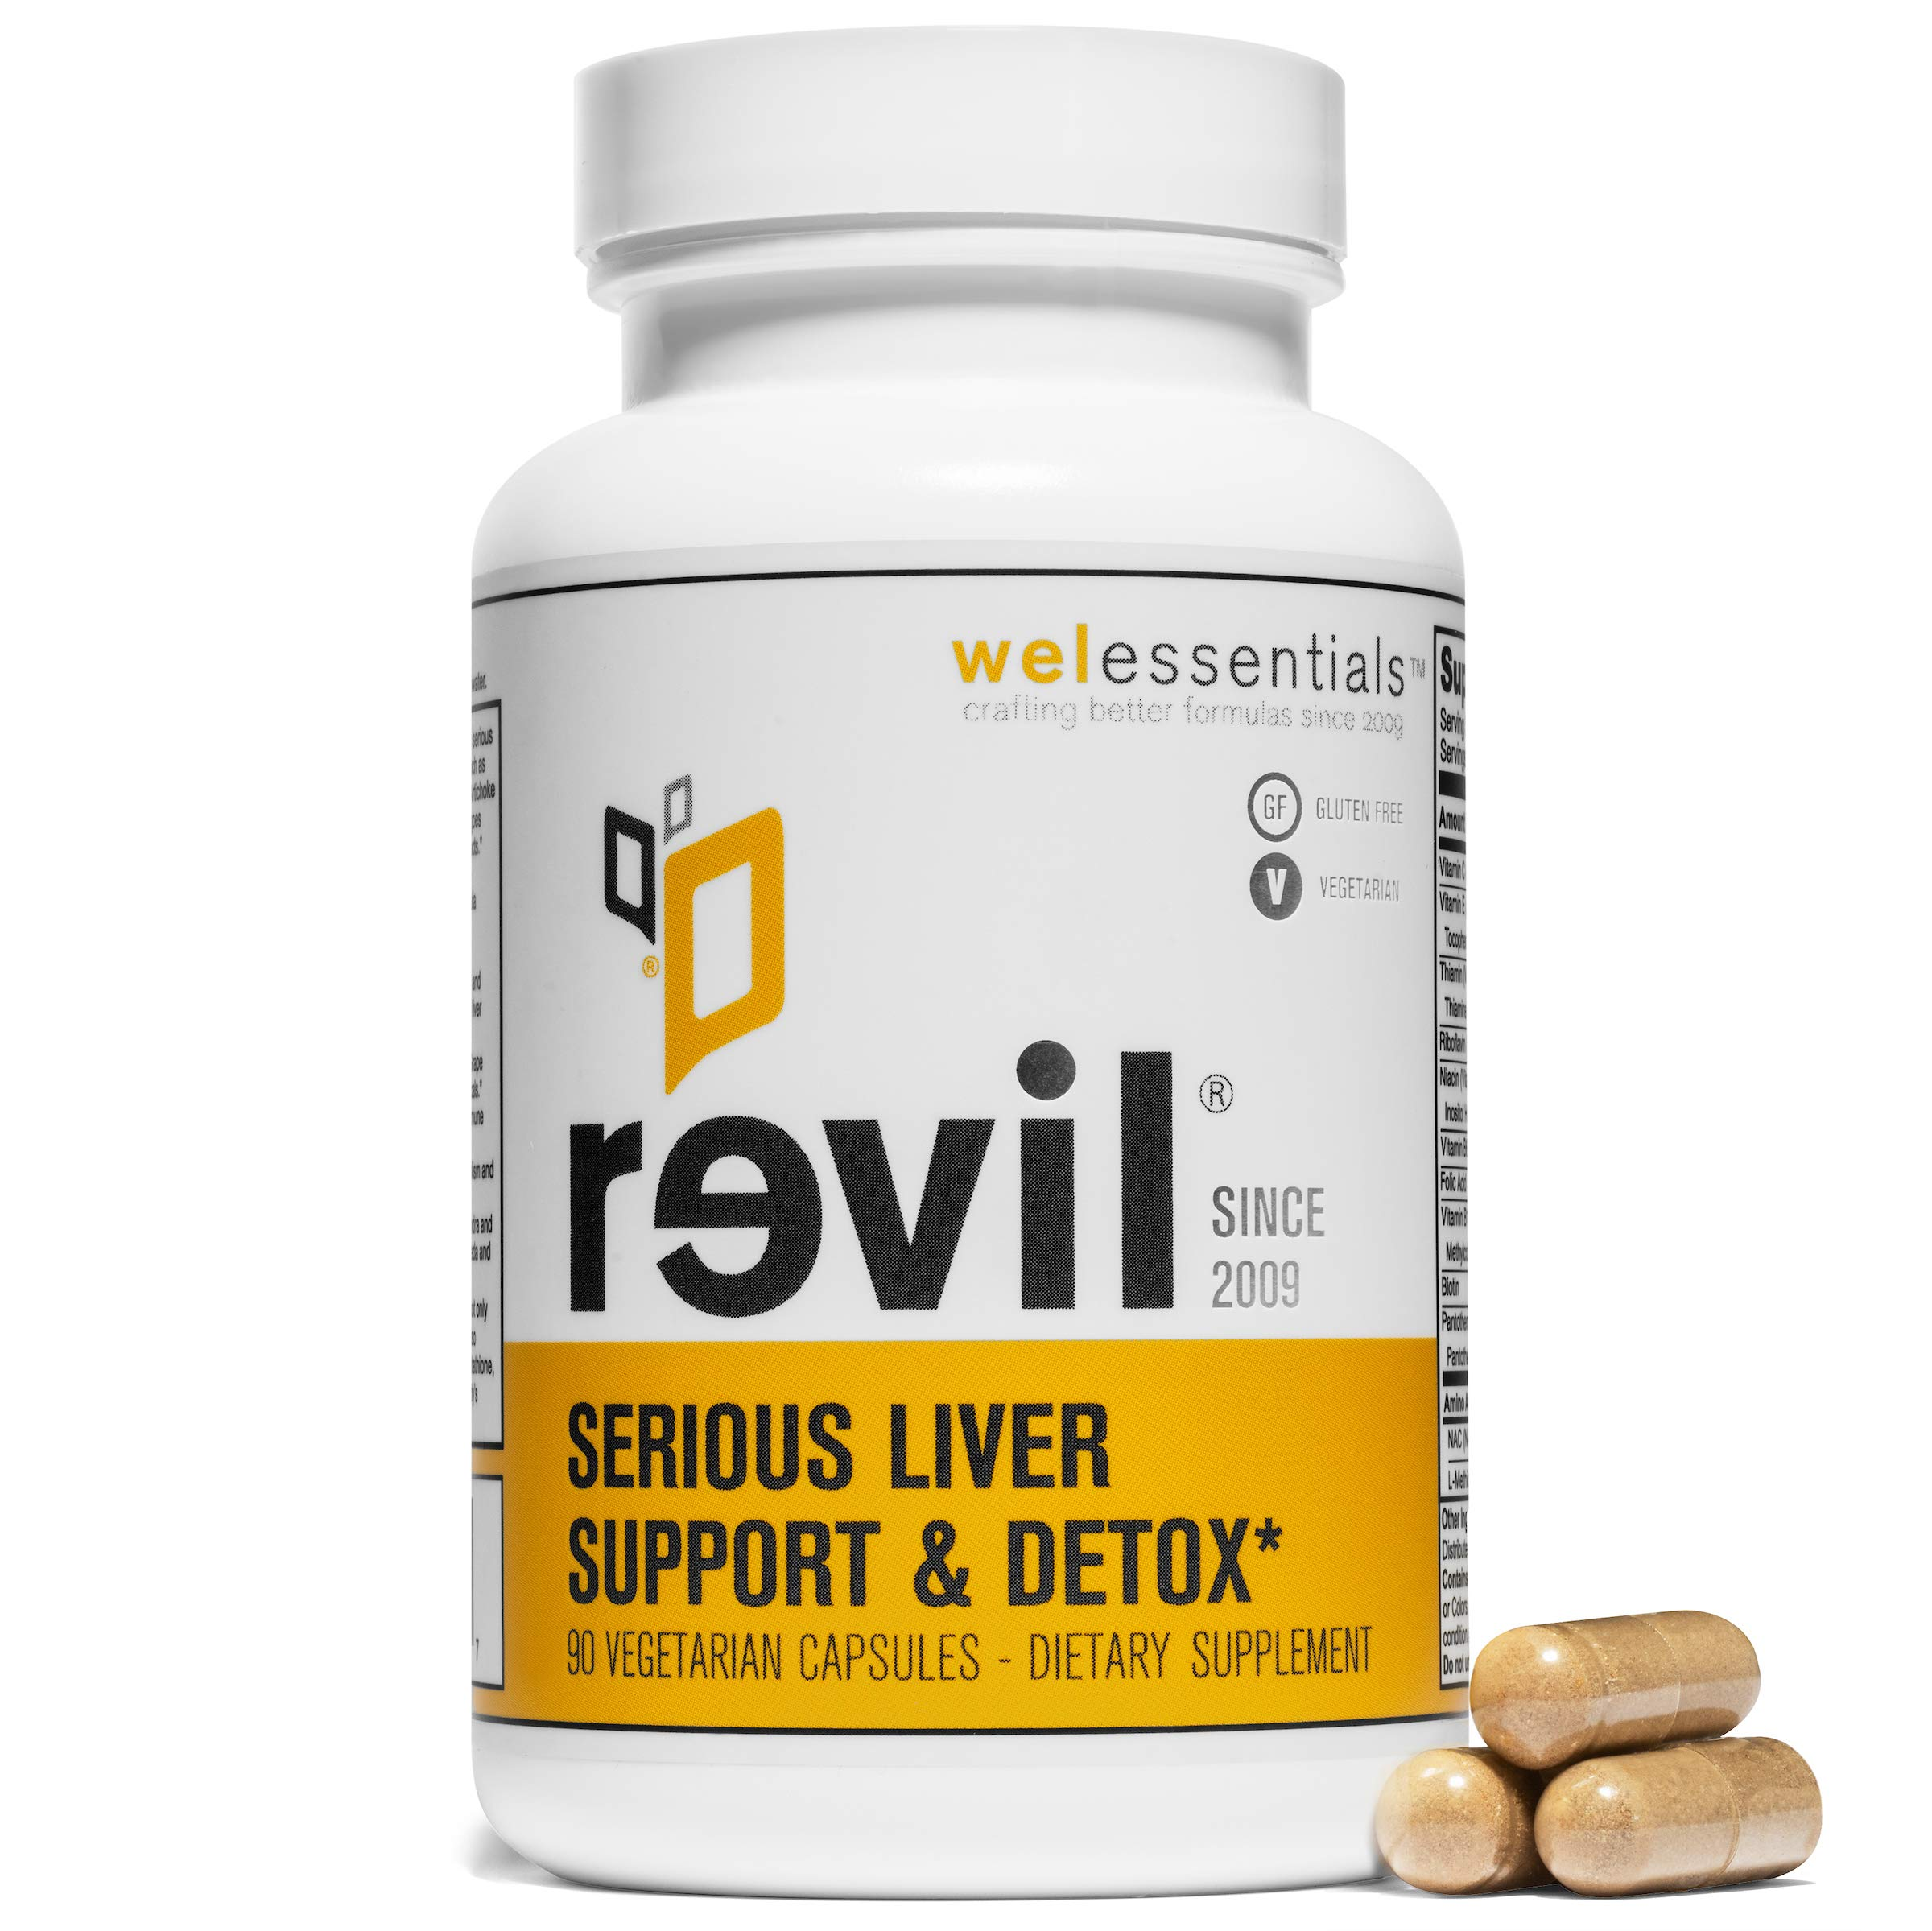 WelEssentials Revil Liver Detox and Herbal Support - 90 Vegetarian Capsules - Dietary Supplement with Organic Milk Thistle, Burdock, Vitamin C - 30 Day Detox - Gluten-Free